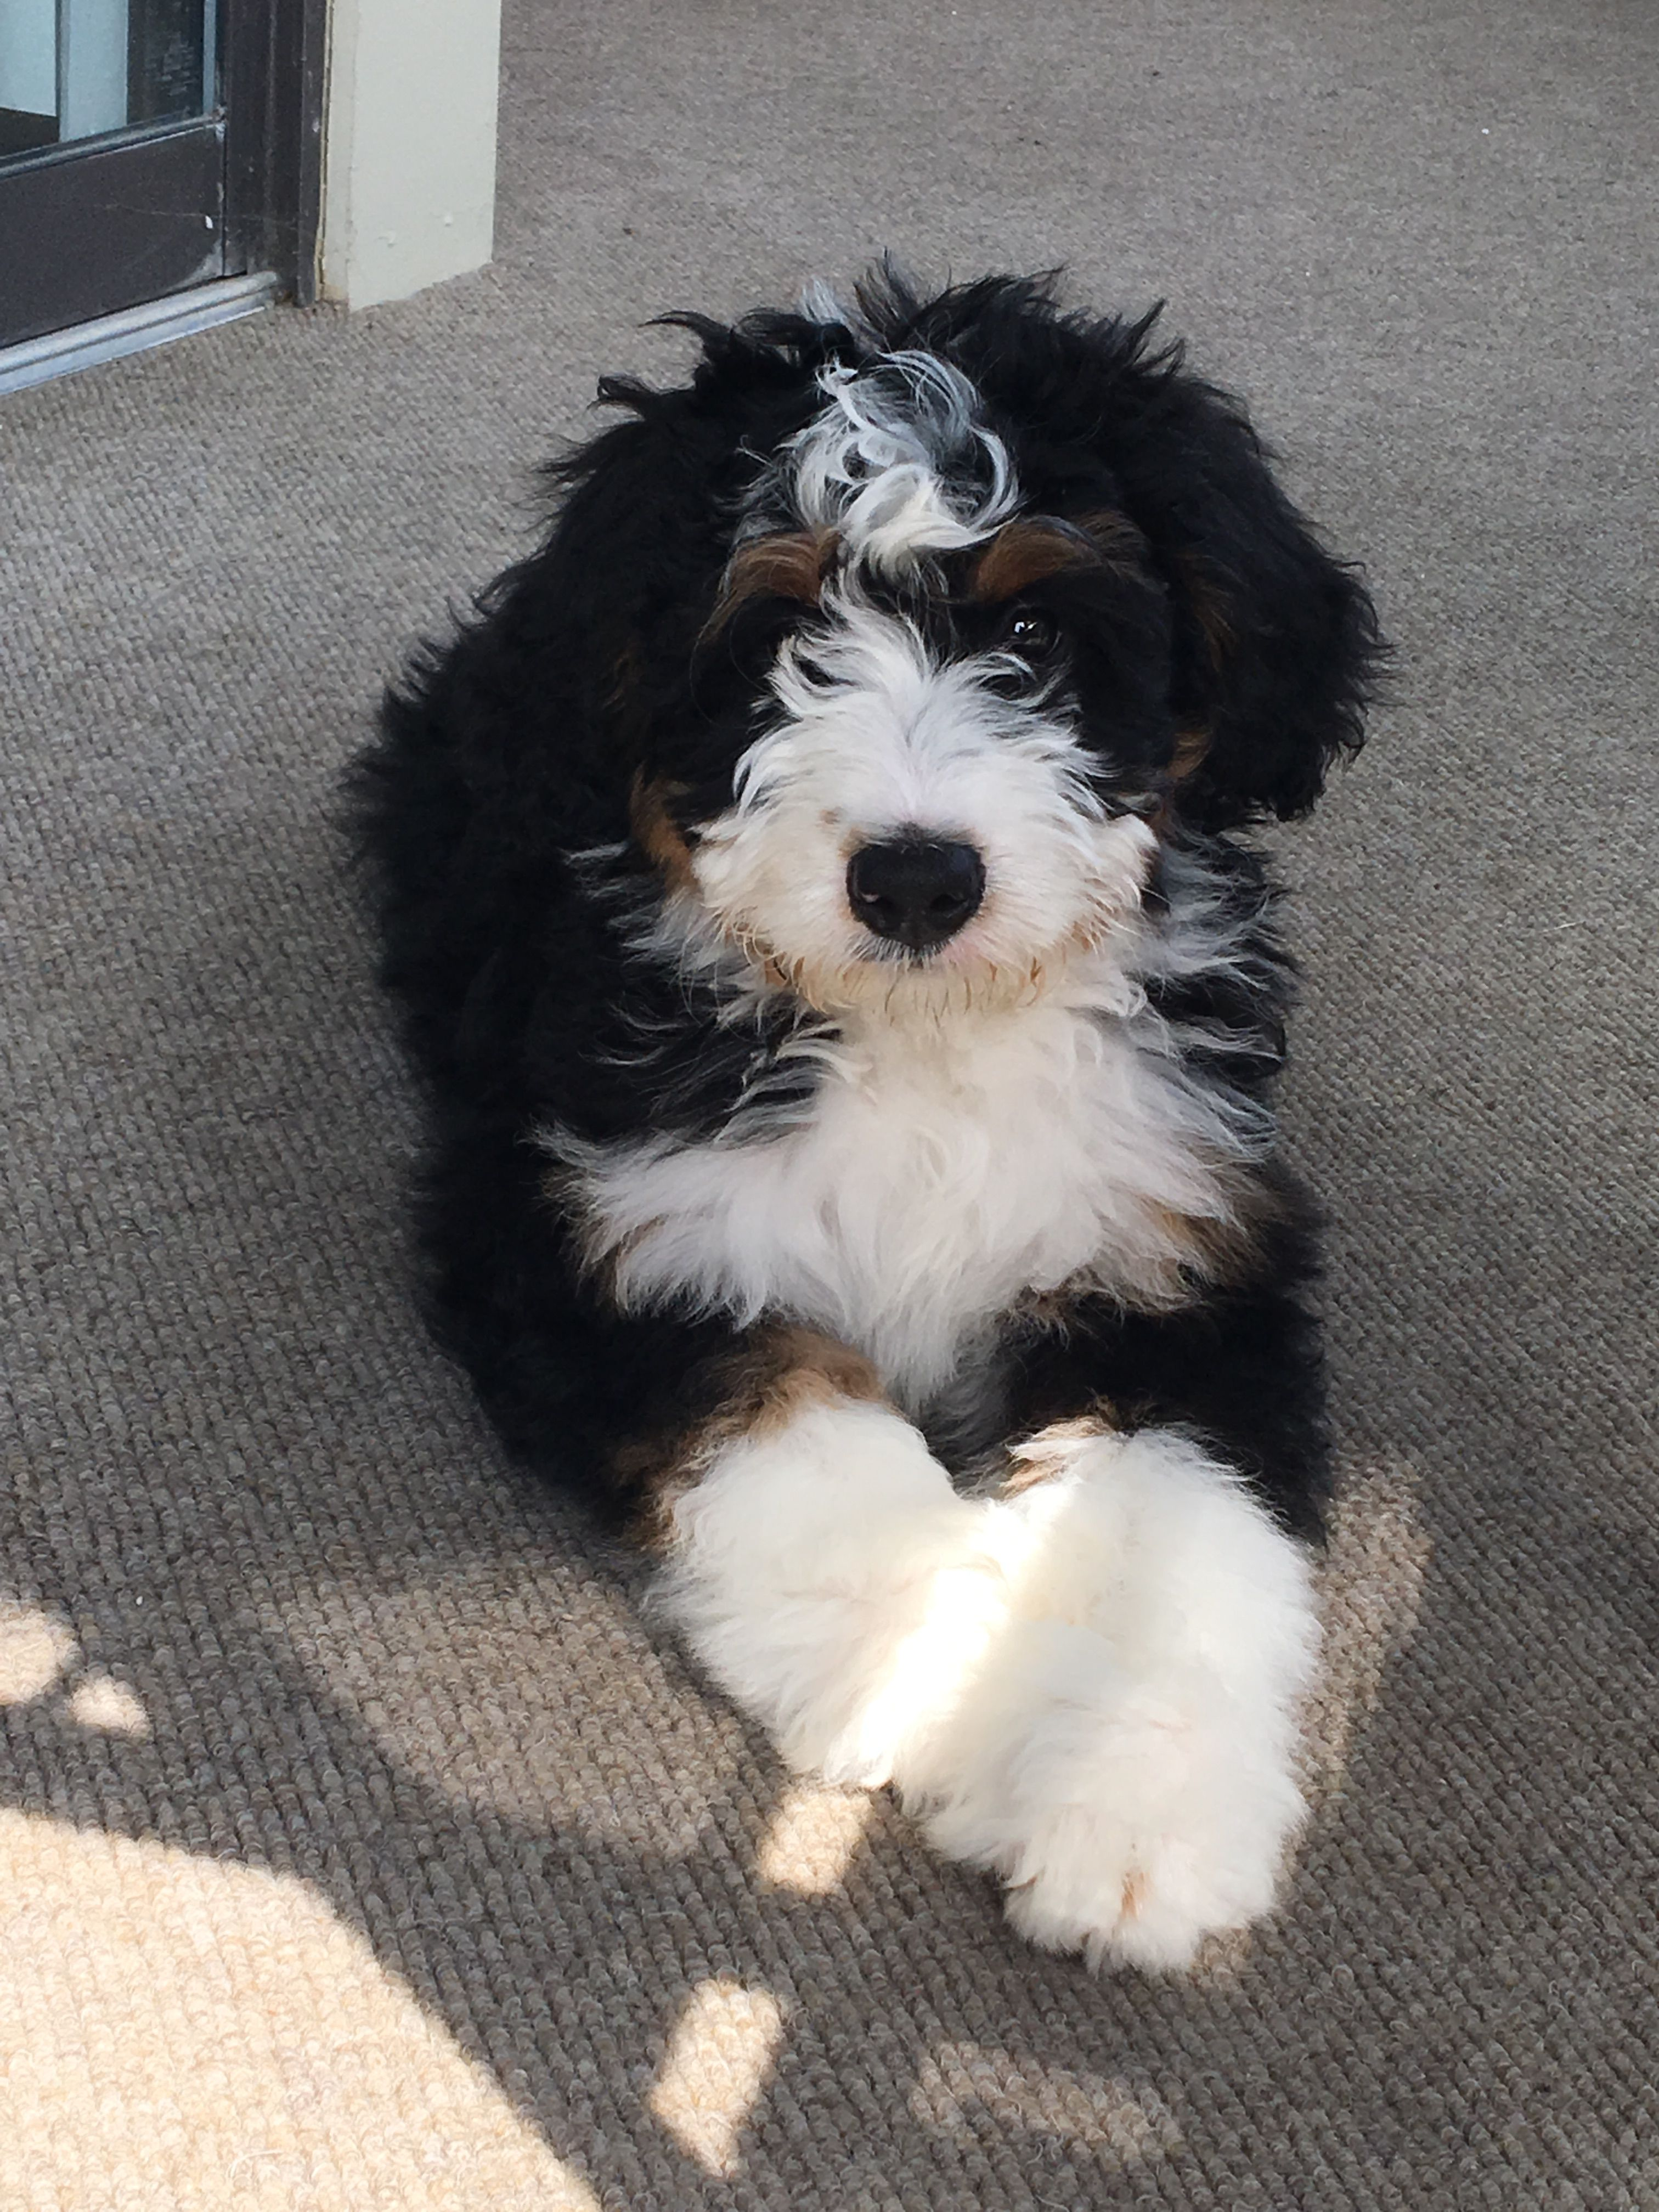 Ig Rory The Bernedoodle Cuddly Animals Cute Dogs Princess Dog